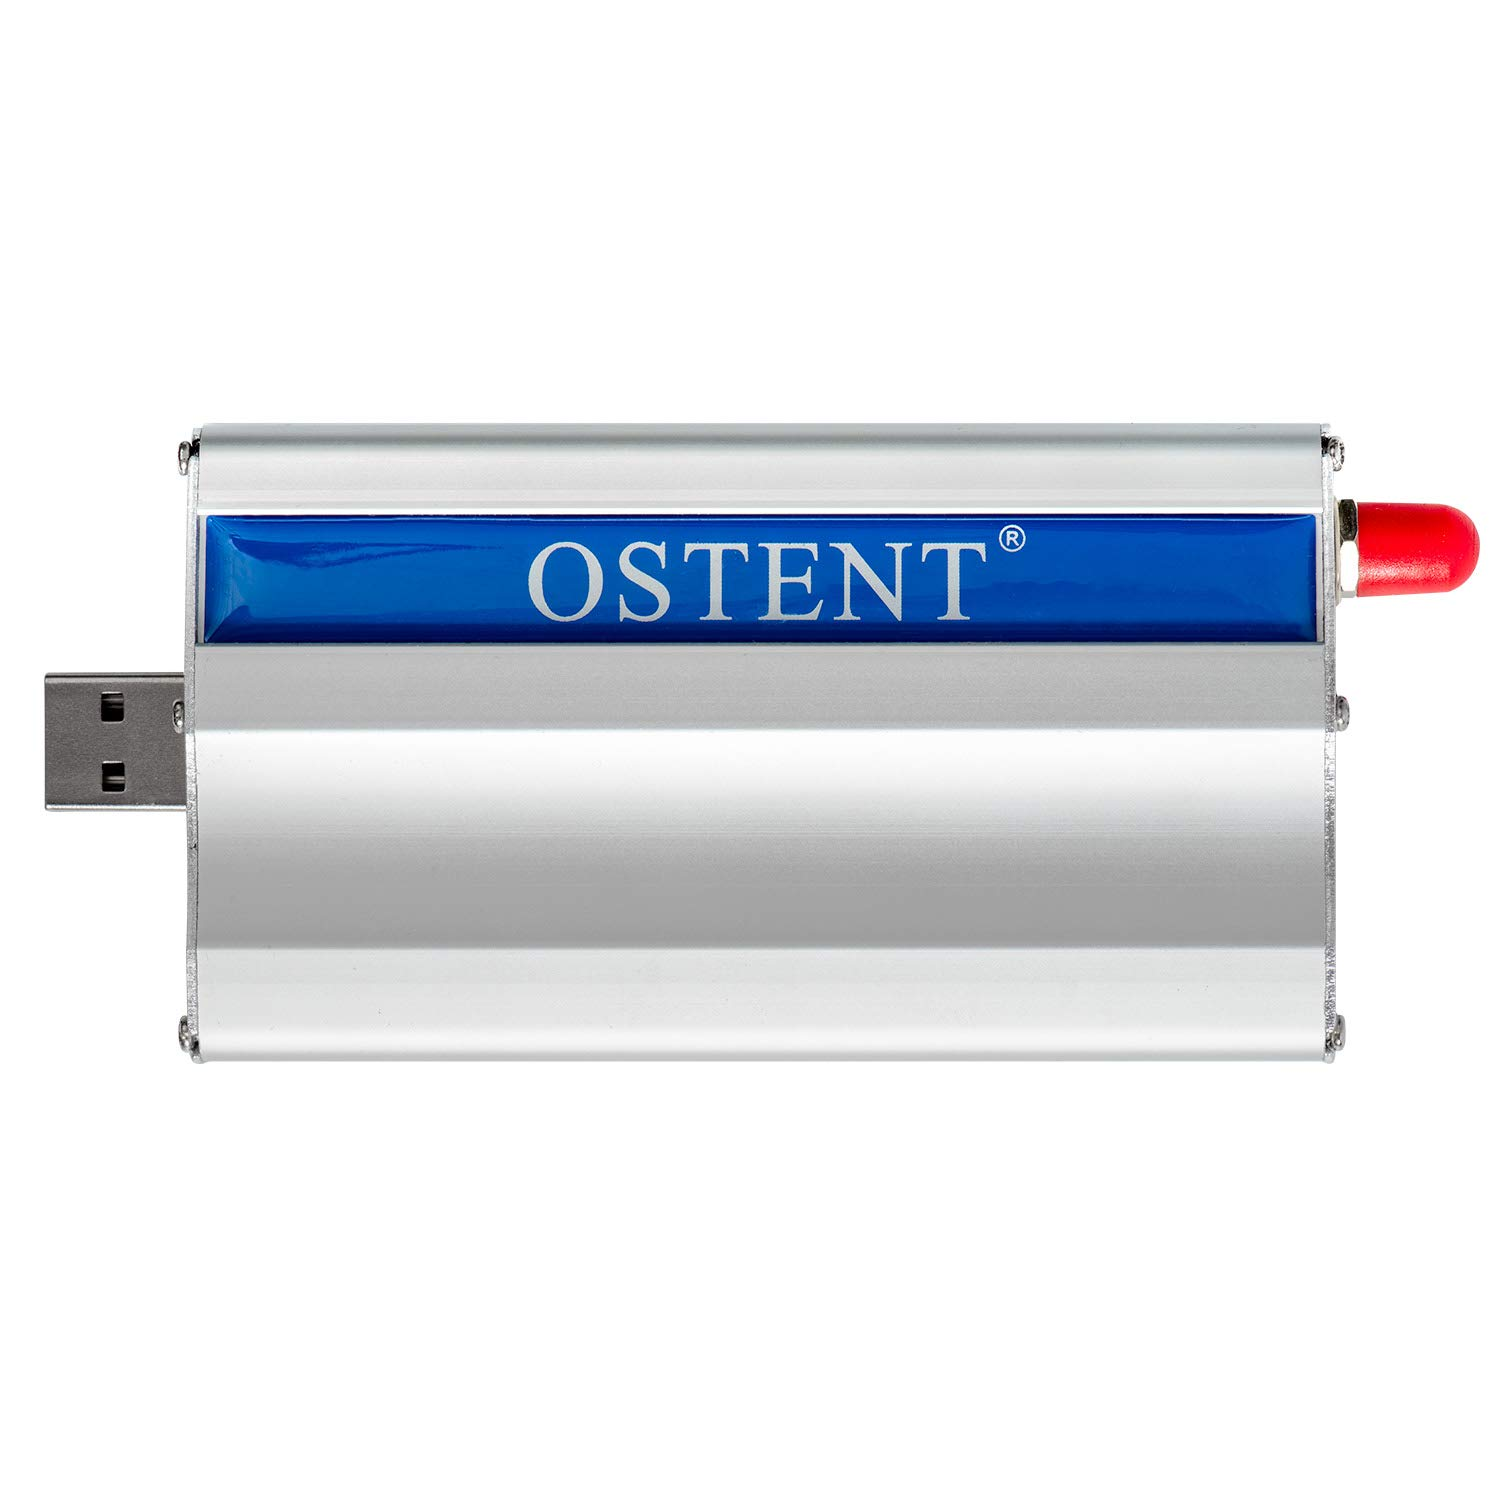 Ostent Quad-Band GSM GPRS Modem with Wavecom Q24PLUS Module USB Interface TCP/Ip SMS Mms